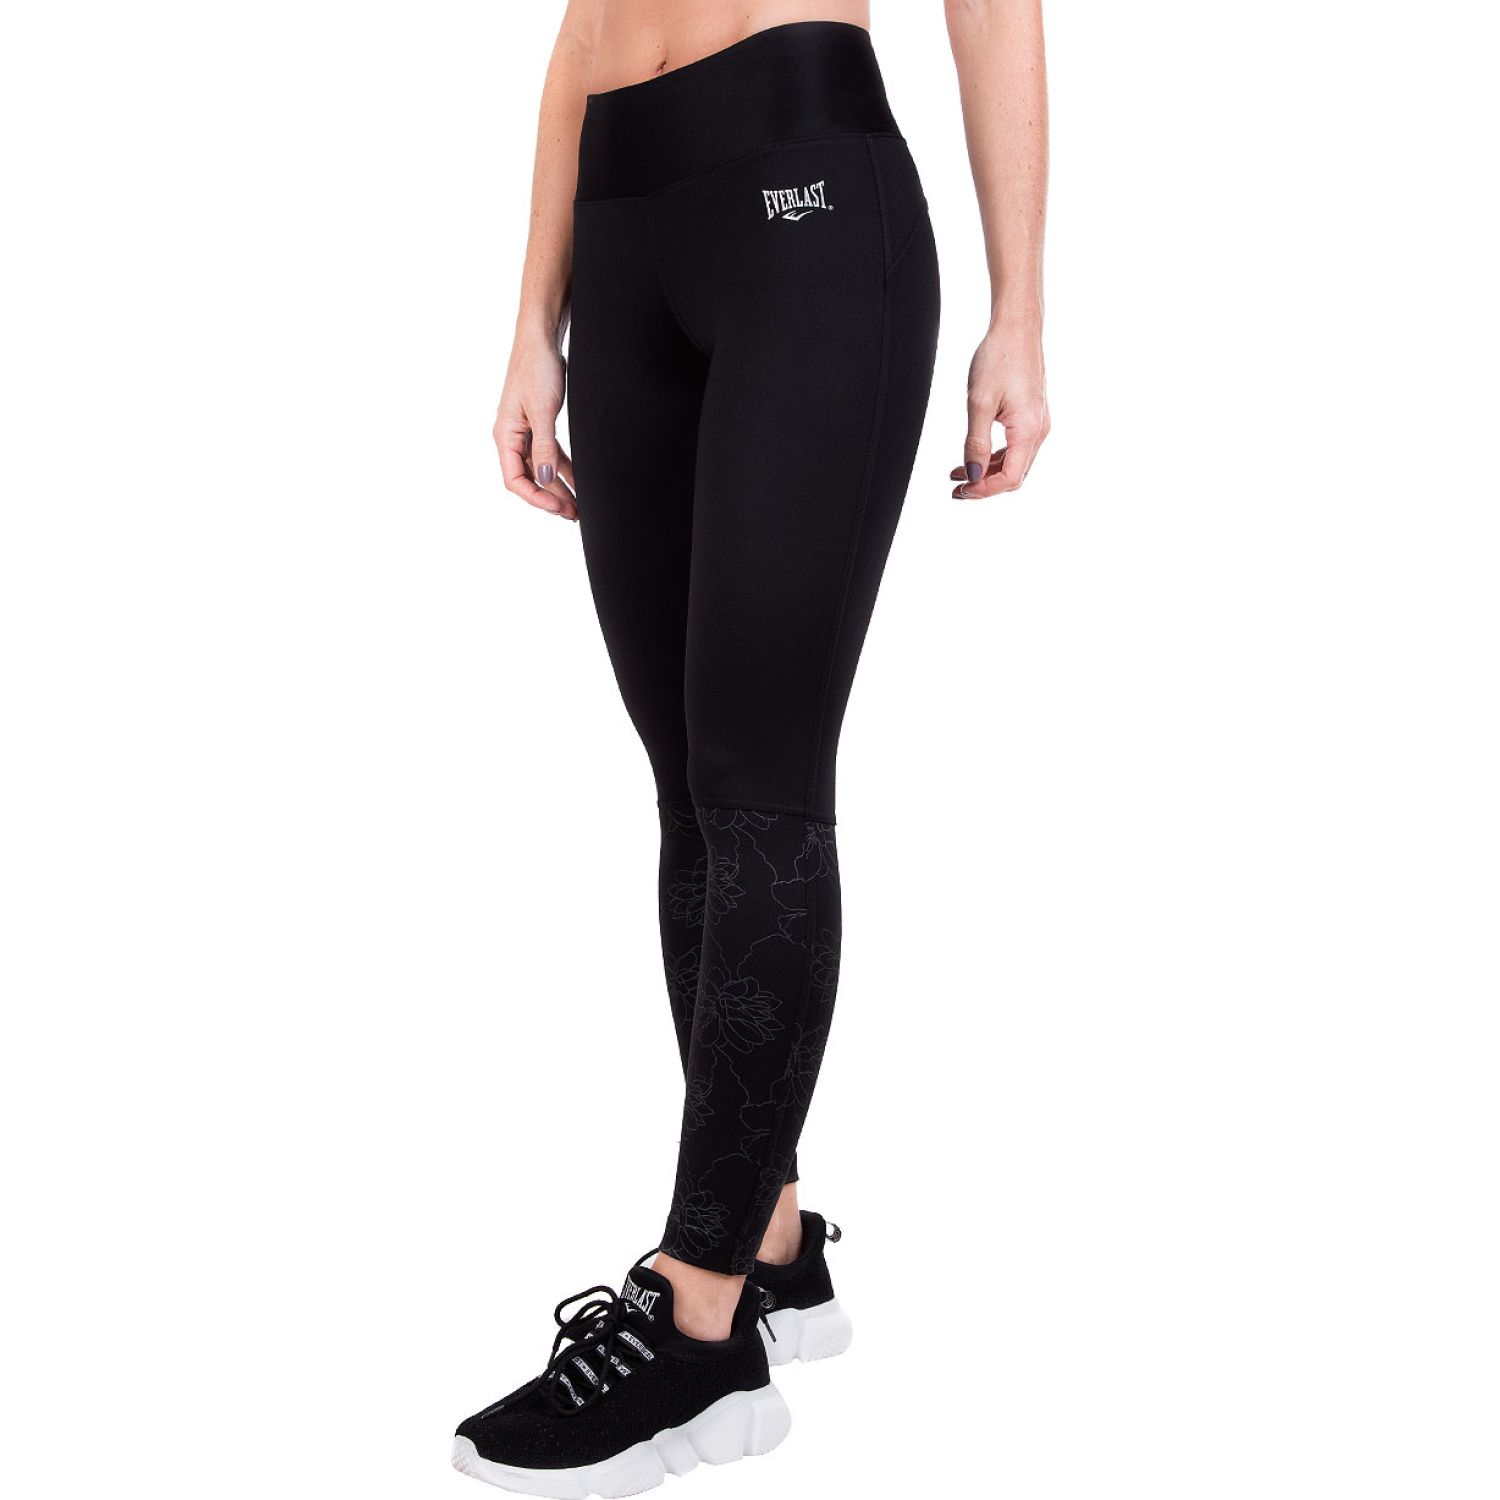 Everlast legging long bee Negro Leggings Deportivos